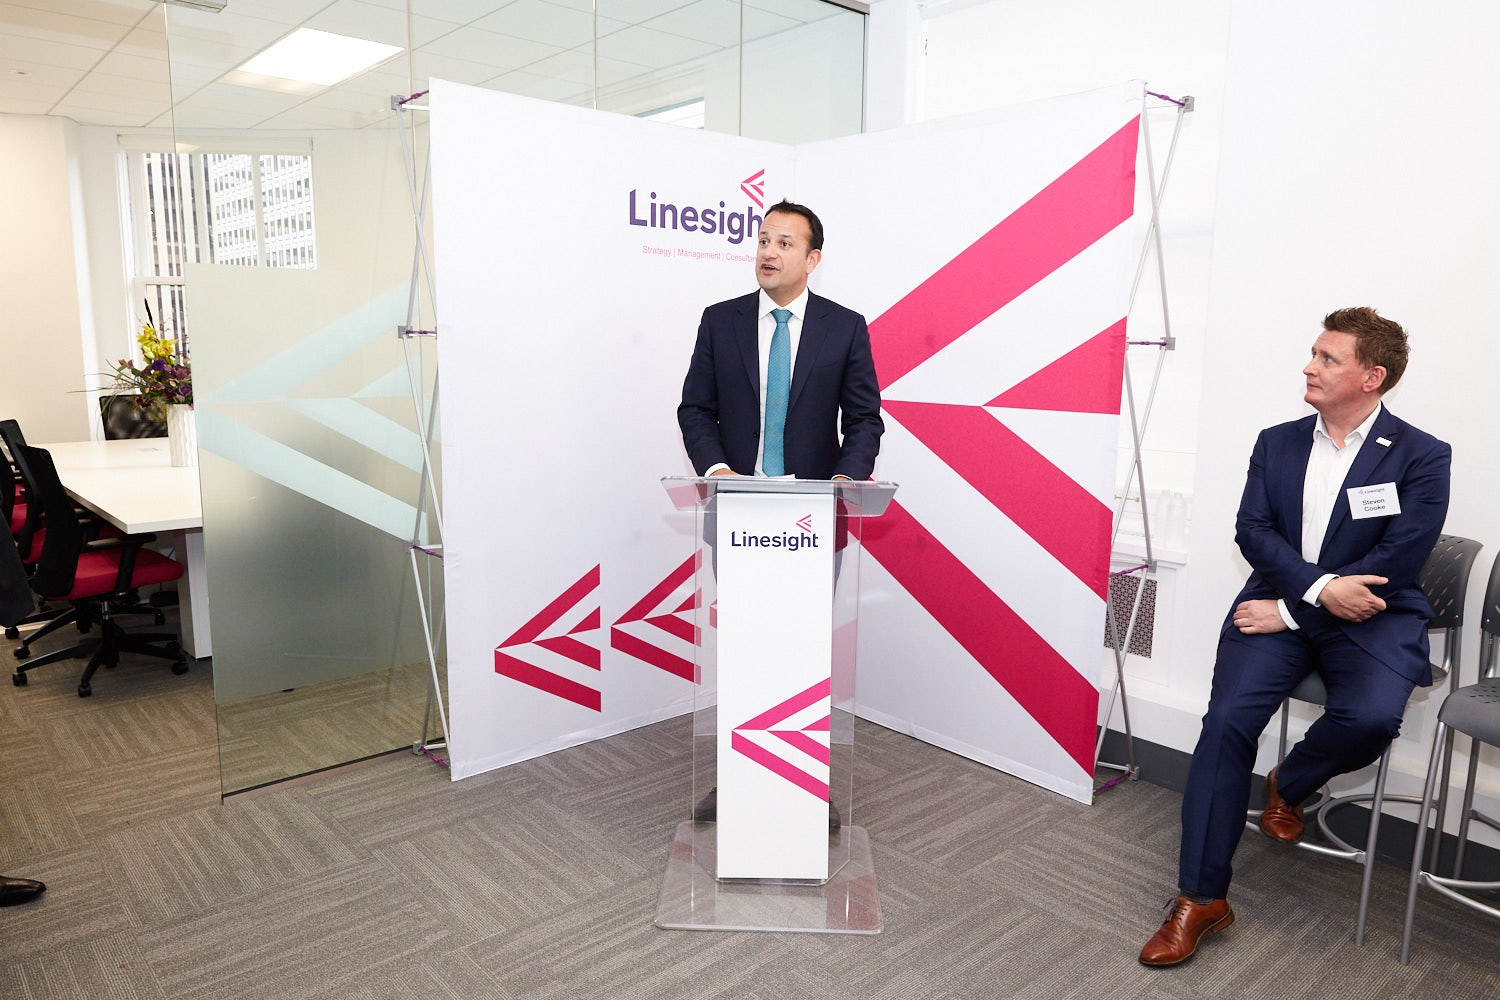 For many clients, branding is key when it comes to signage, like this podium and backdrop for Linesight's office warming event (with special guest speaker, Leo Varadkar, Prime Minister of Ireland).